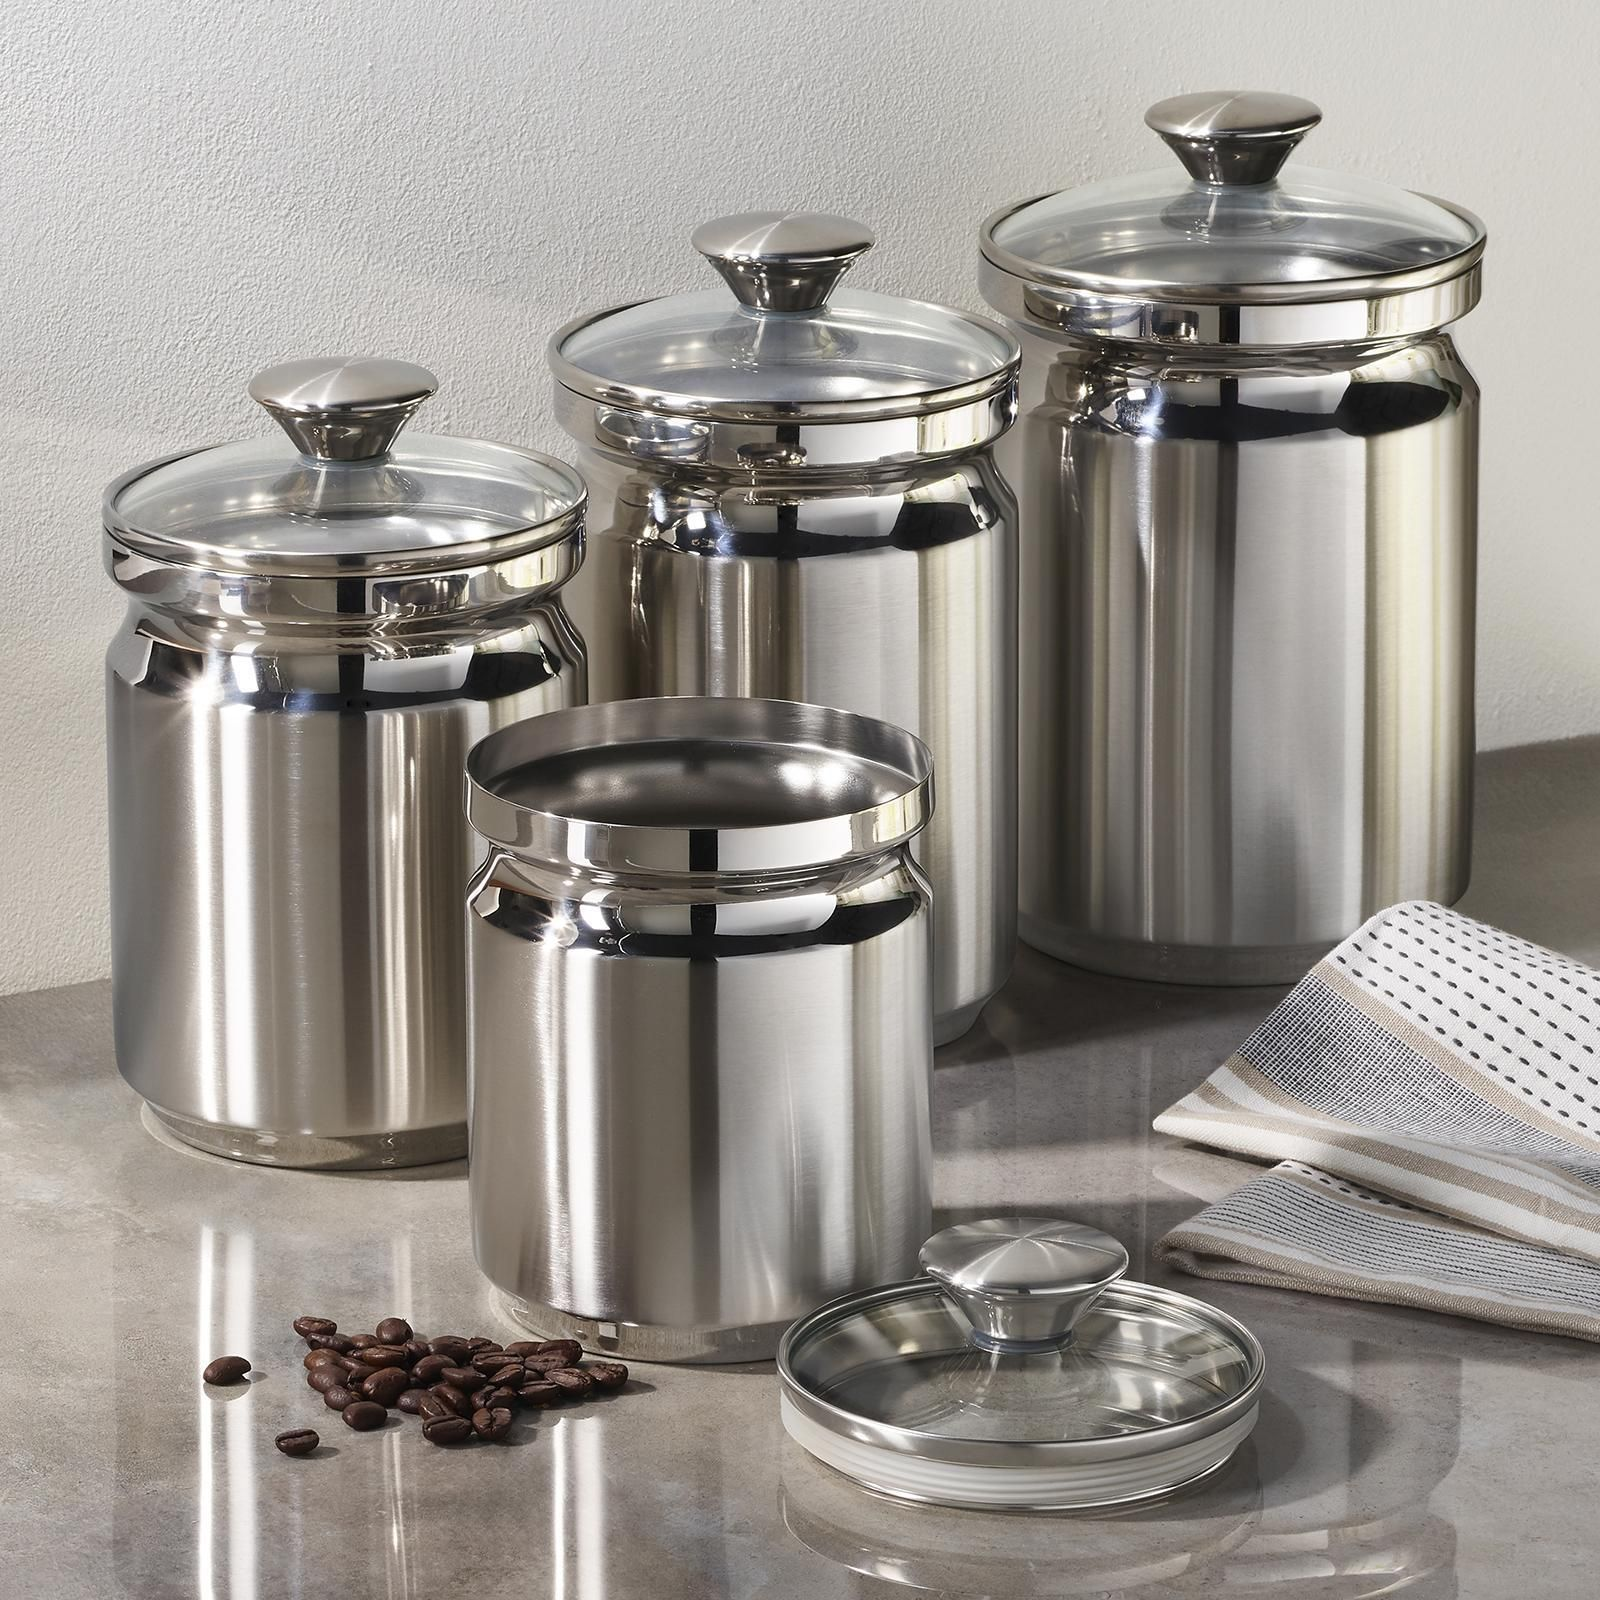 Tramontina Gourmet 4 Piece Covered Canister Set In 2021 Stainless Steel Canister Set Stainless Steel Canisters Glass Kitchen Canisters Stainless steel kitchen canister sets